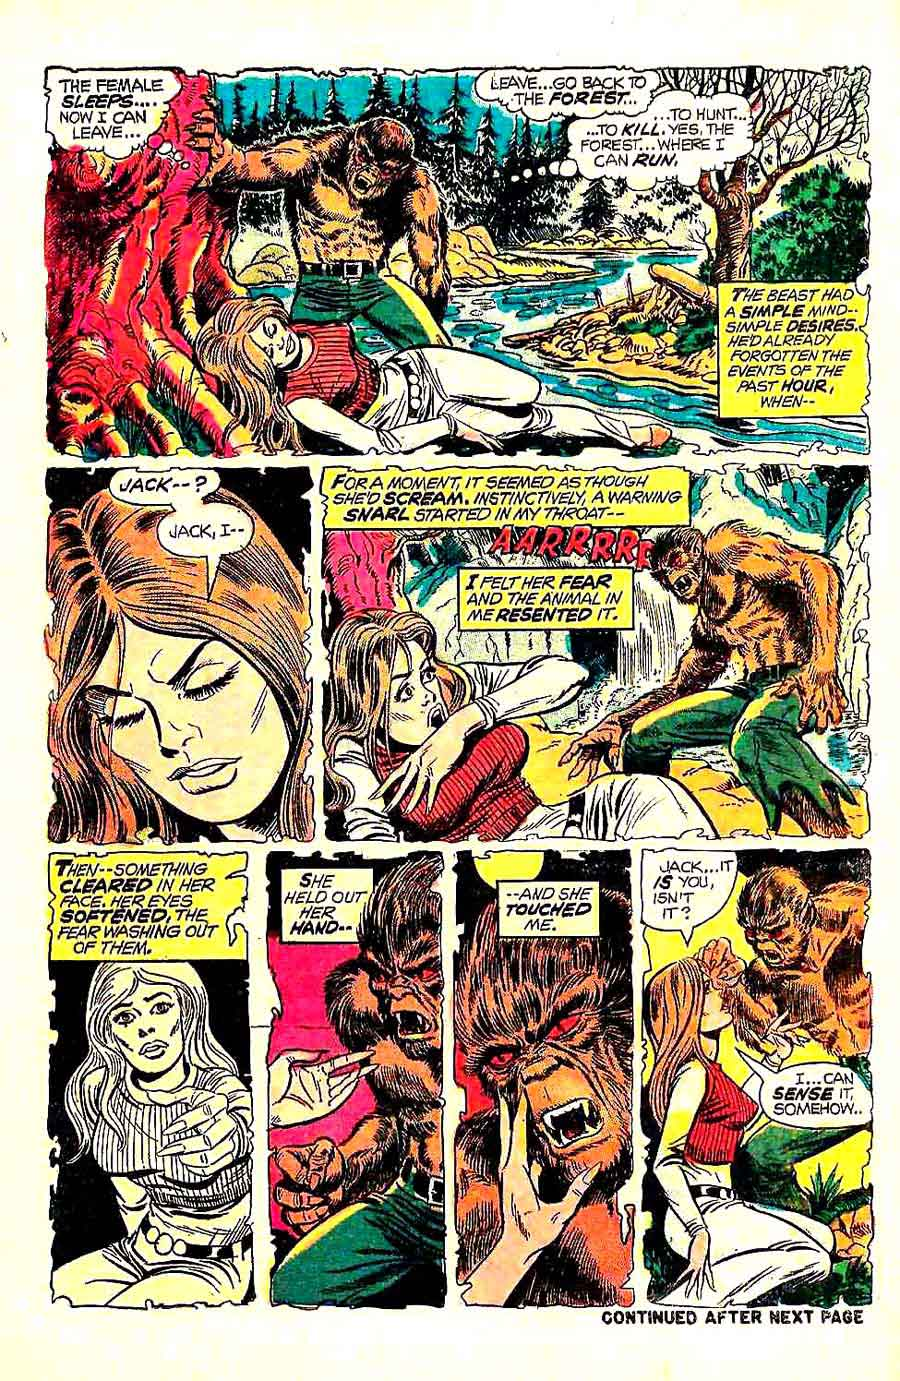 Werewolf by Night v1 #4 1970s marvel comic book page art by Mike Ploog